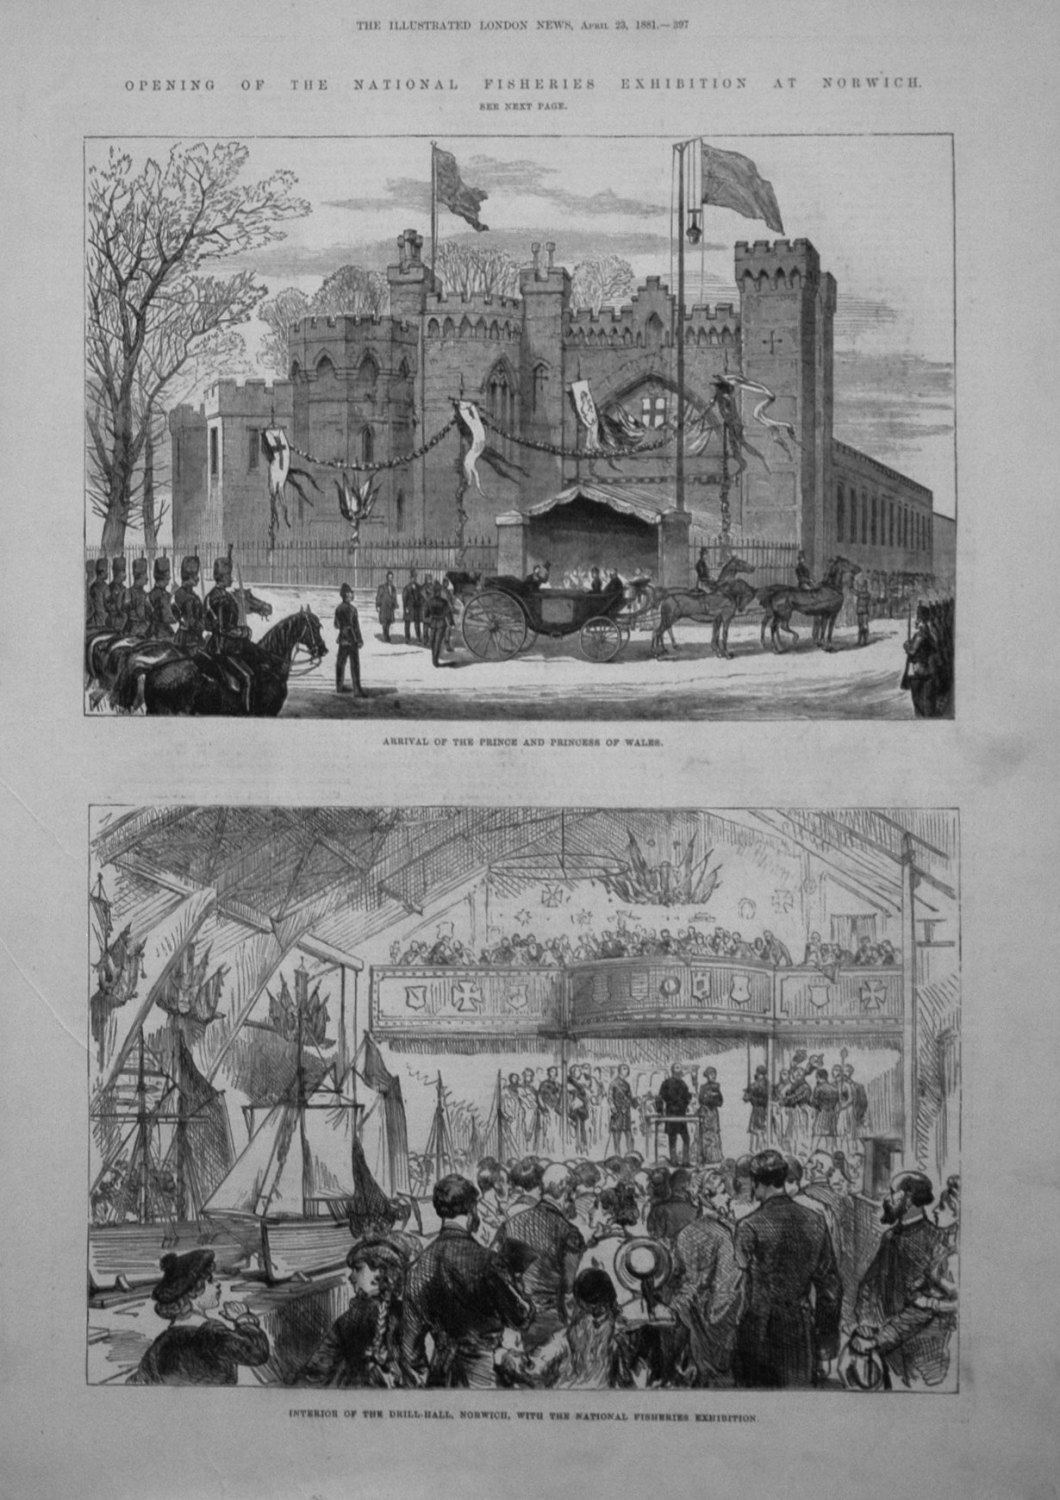 Opening of the National Fisheries Exhibition Norwich. 1881